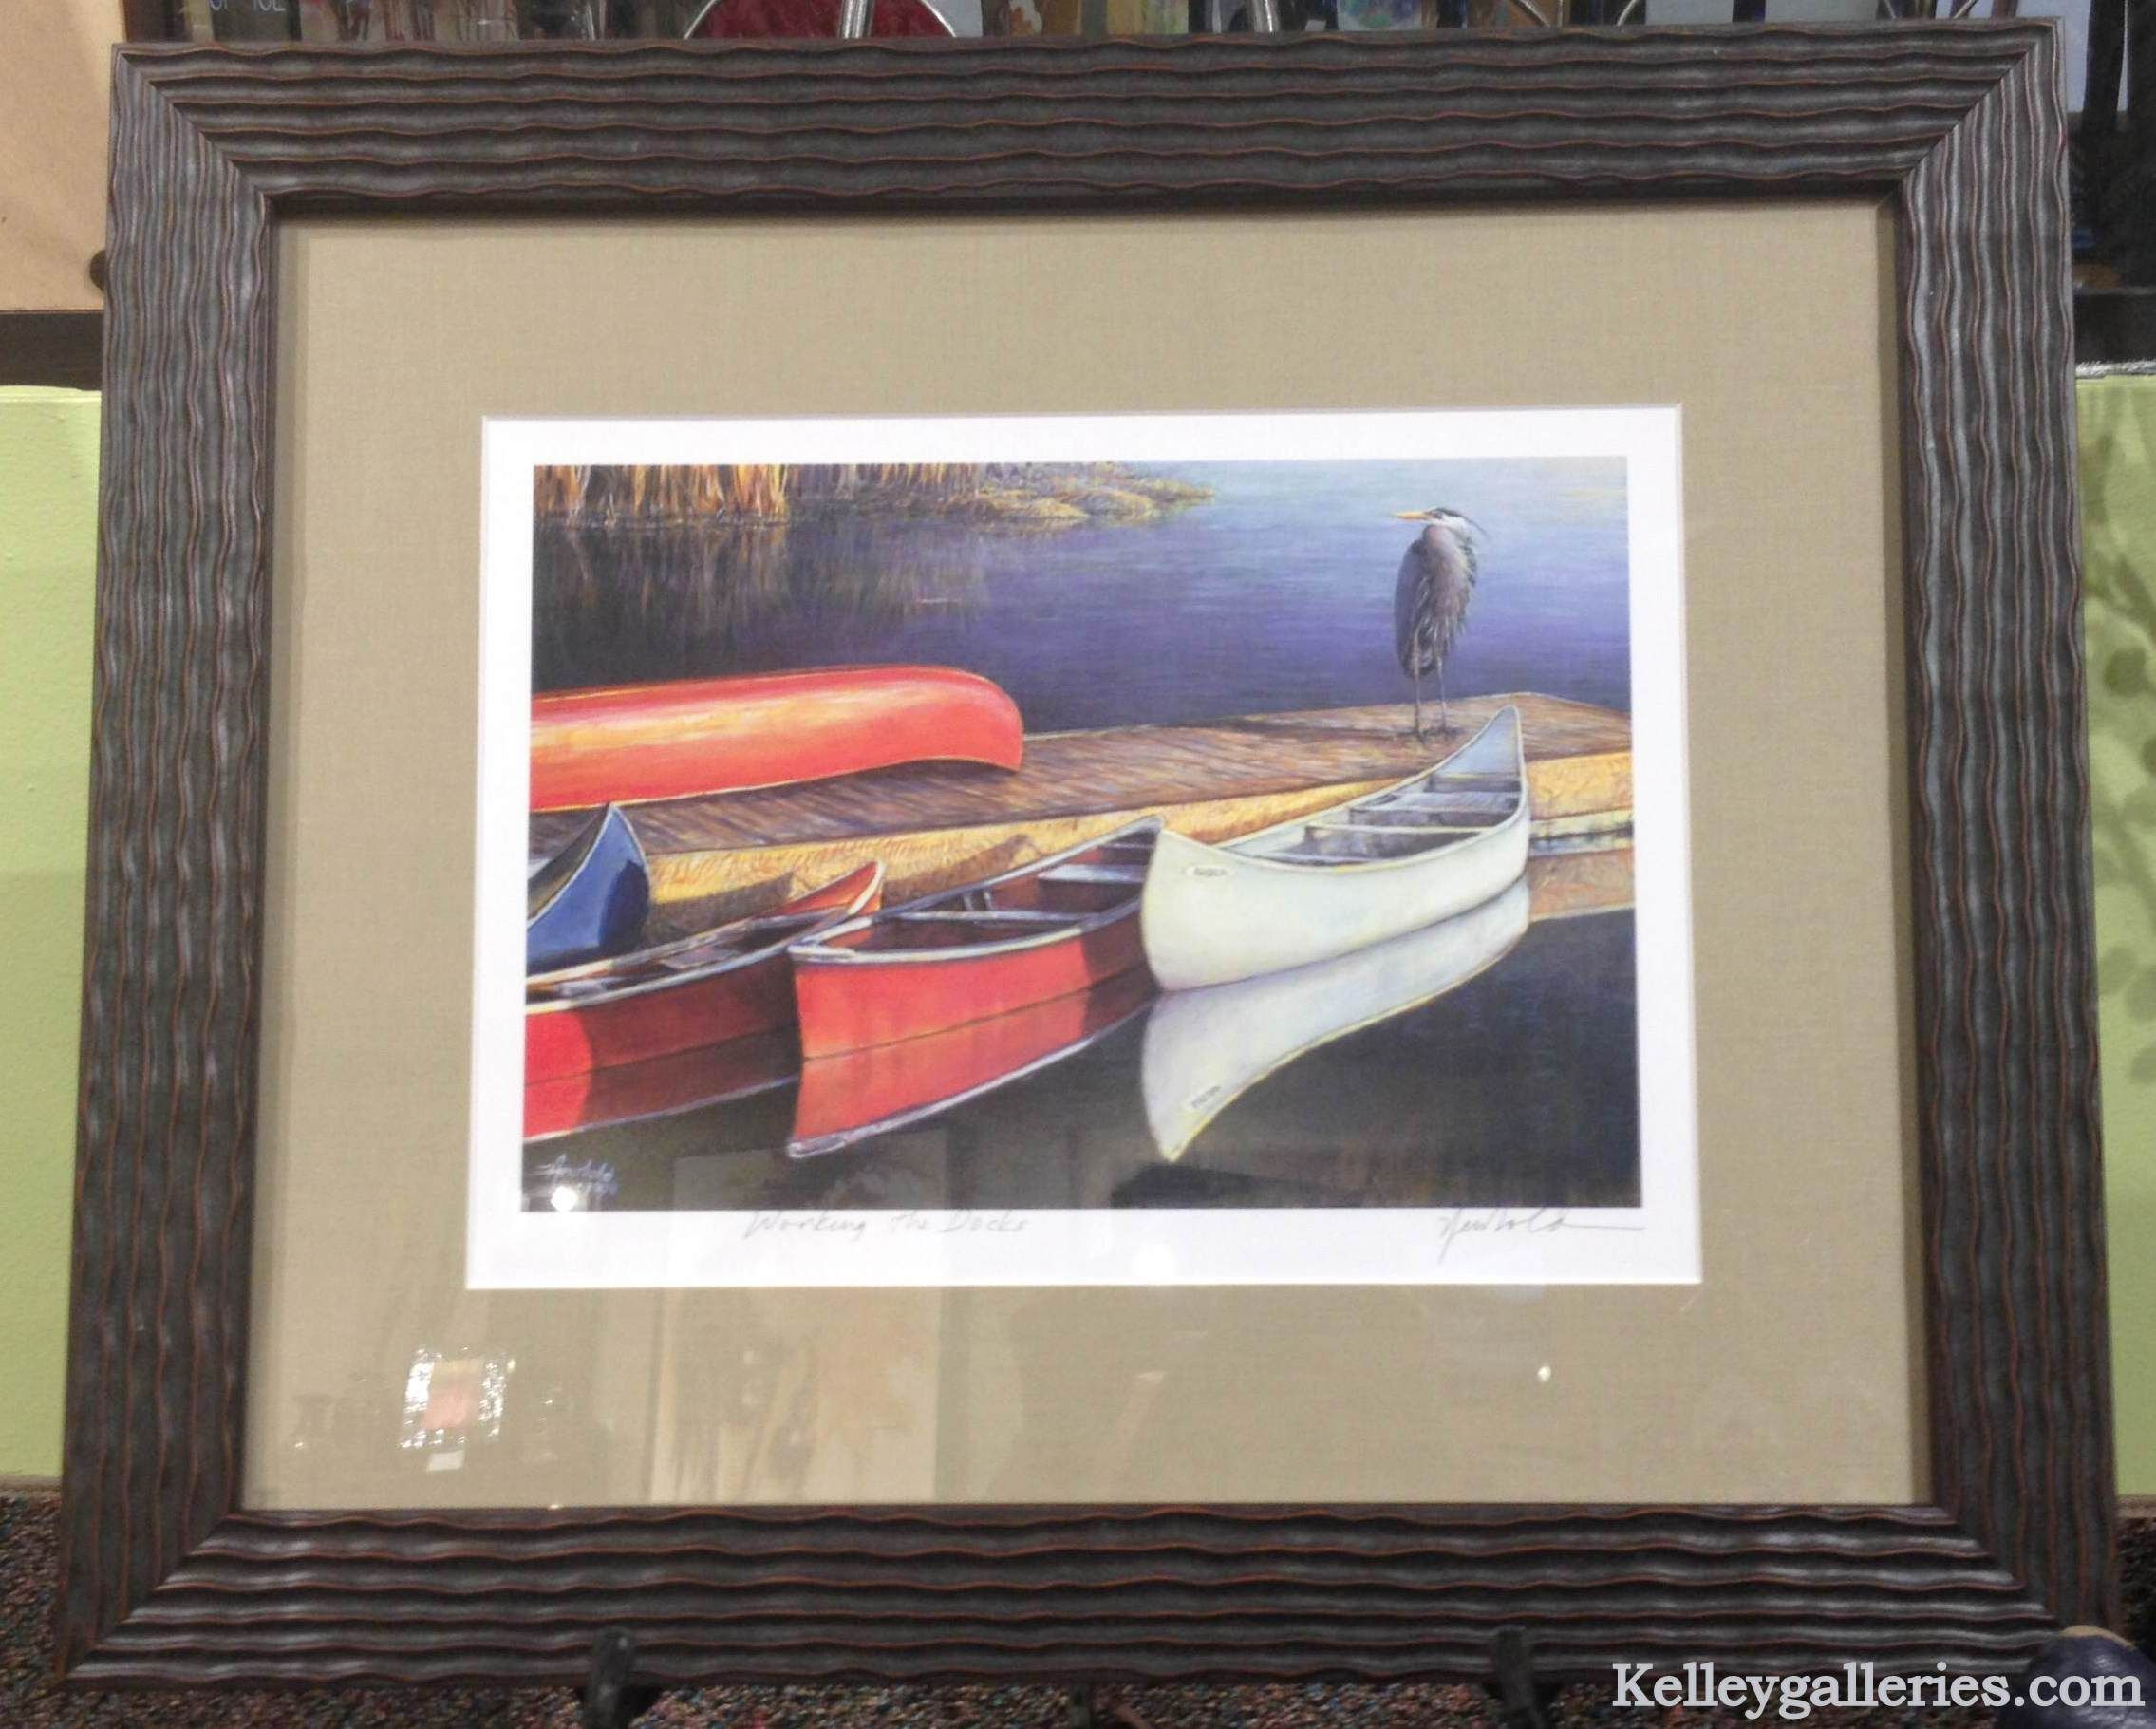 Professional custom framing at kelley gallery hudson professional custom framing at kelley gallery hudson jeuxipadfo Image collections